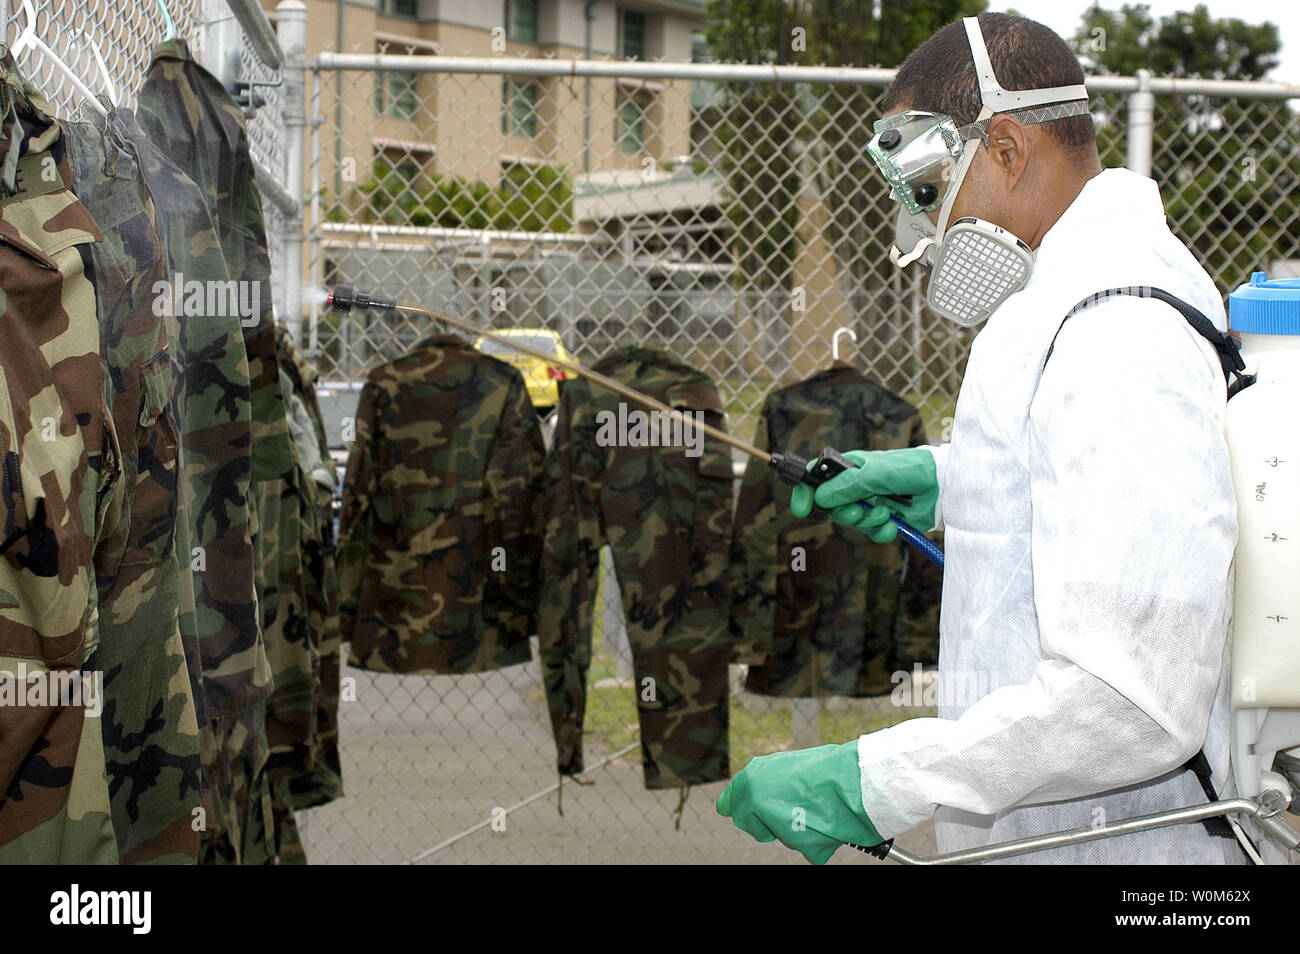 In preparation of deployment to Indonesia with the Naval Environmental Preventive Medicine Unit, Ron Berard sprays uniforms with Permethrin mosquito repellant on December 30, 2004 in Pearl Harbor, Hawaii. The unites will assist humanitarian relief efforts by providing water quality testing, bug spraying, and medical care for Tsunami survivors.      (UPI Photo/Jennifer L. Bailey  via Navy) - Stock Image